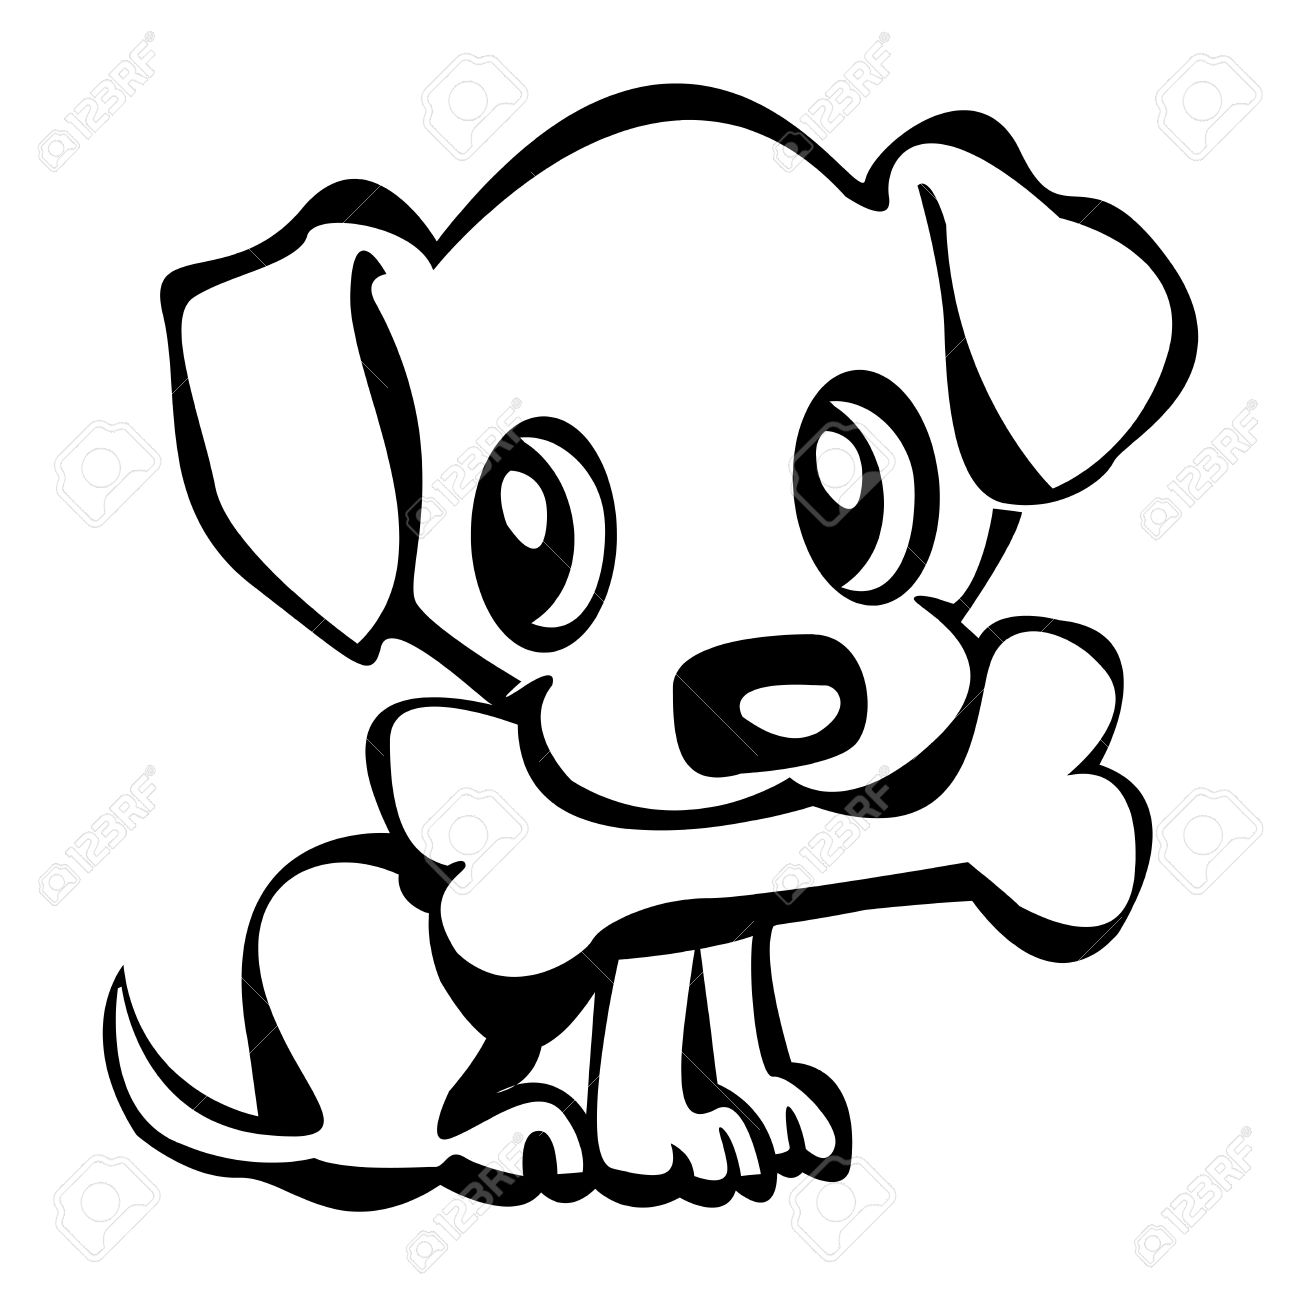 Puppies Outline With Puppy Outline Clipart : Puppies Outline.